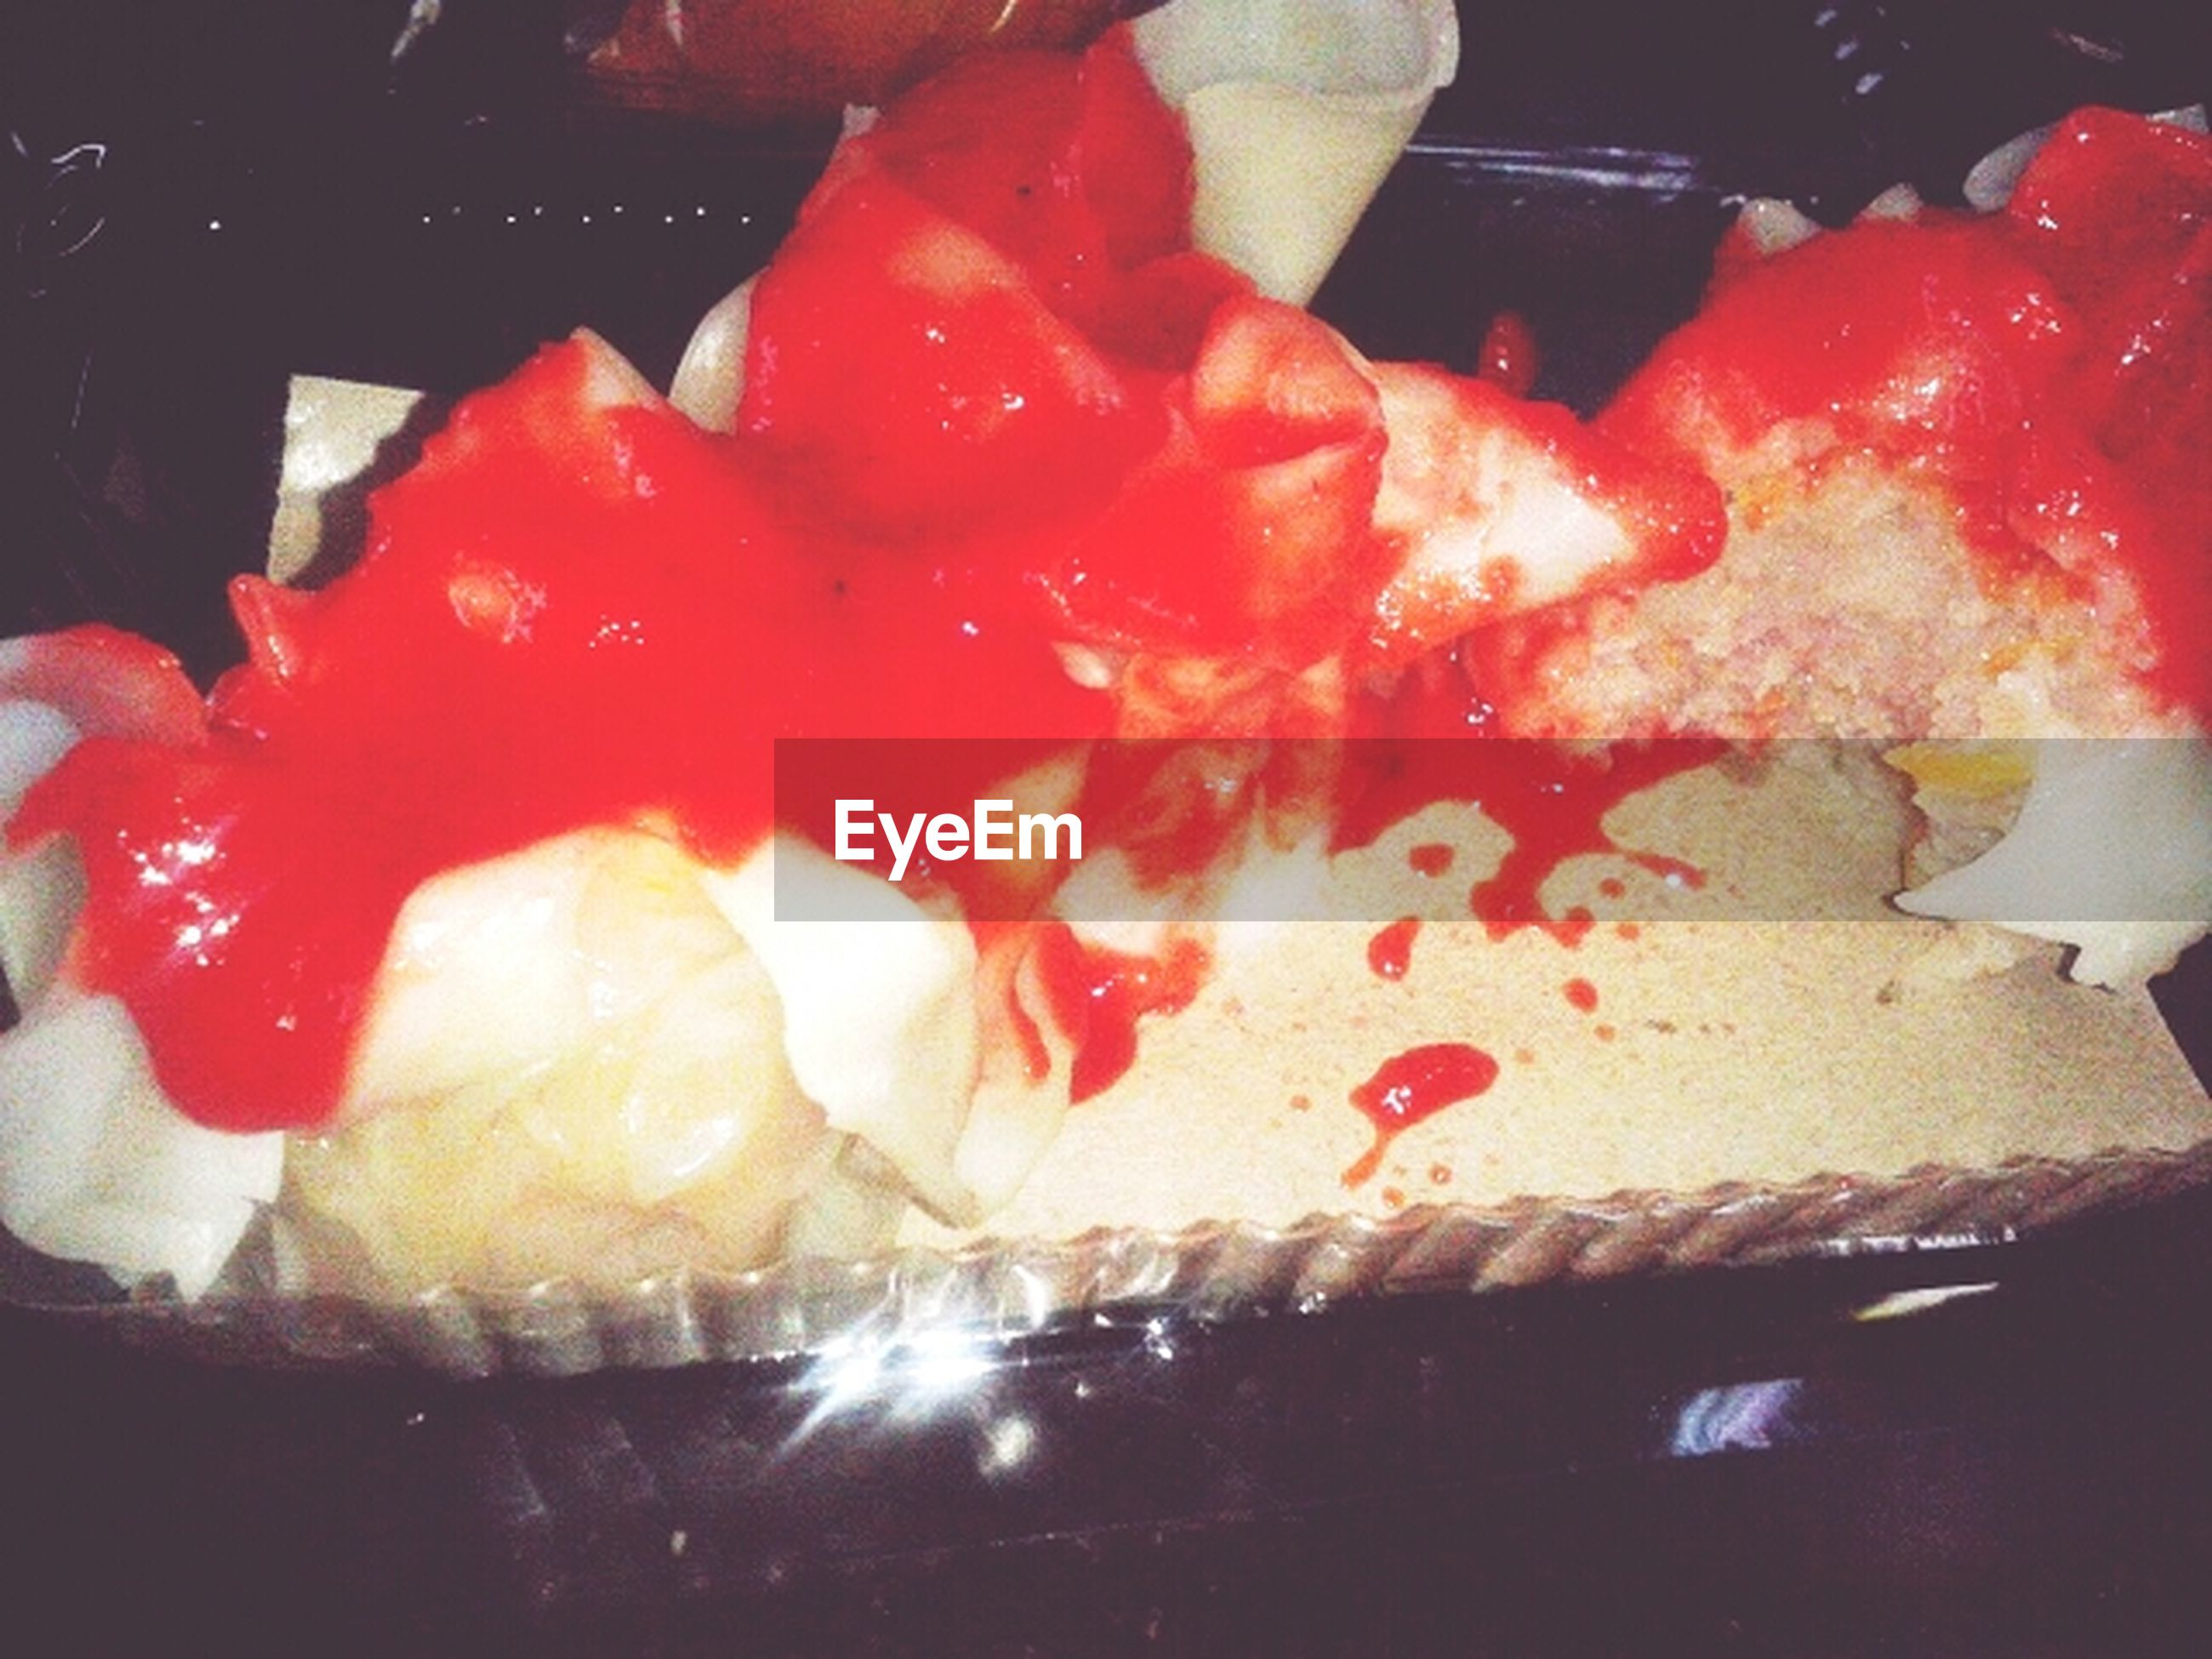 indoors, food, food and drink, freshness, sweet food, close-up, red, indulgence, still life, unhealthy eating, dessert, ready-to-eat, temptation, cake, high angle view, no people, slice, night, strawberry, preparation